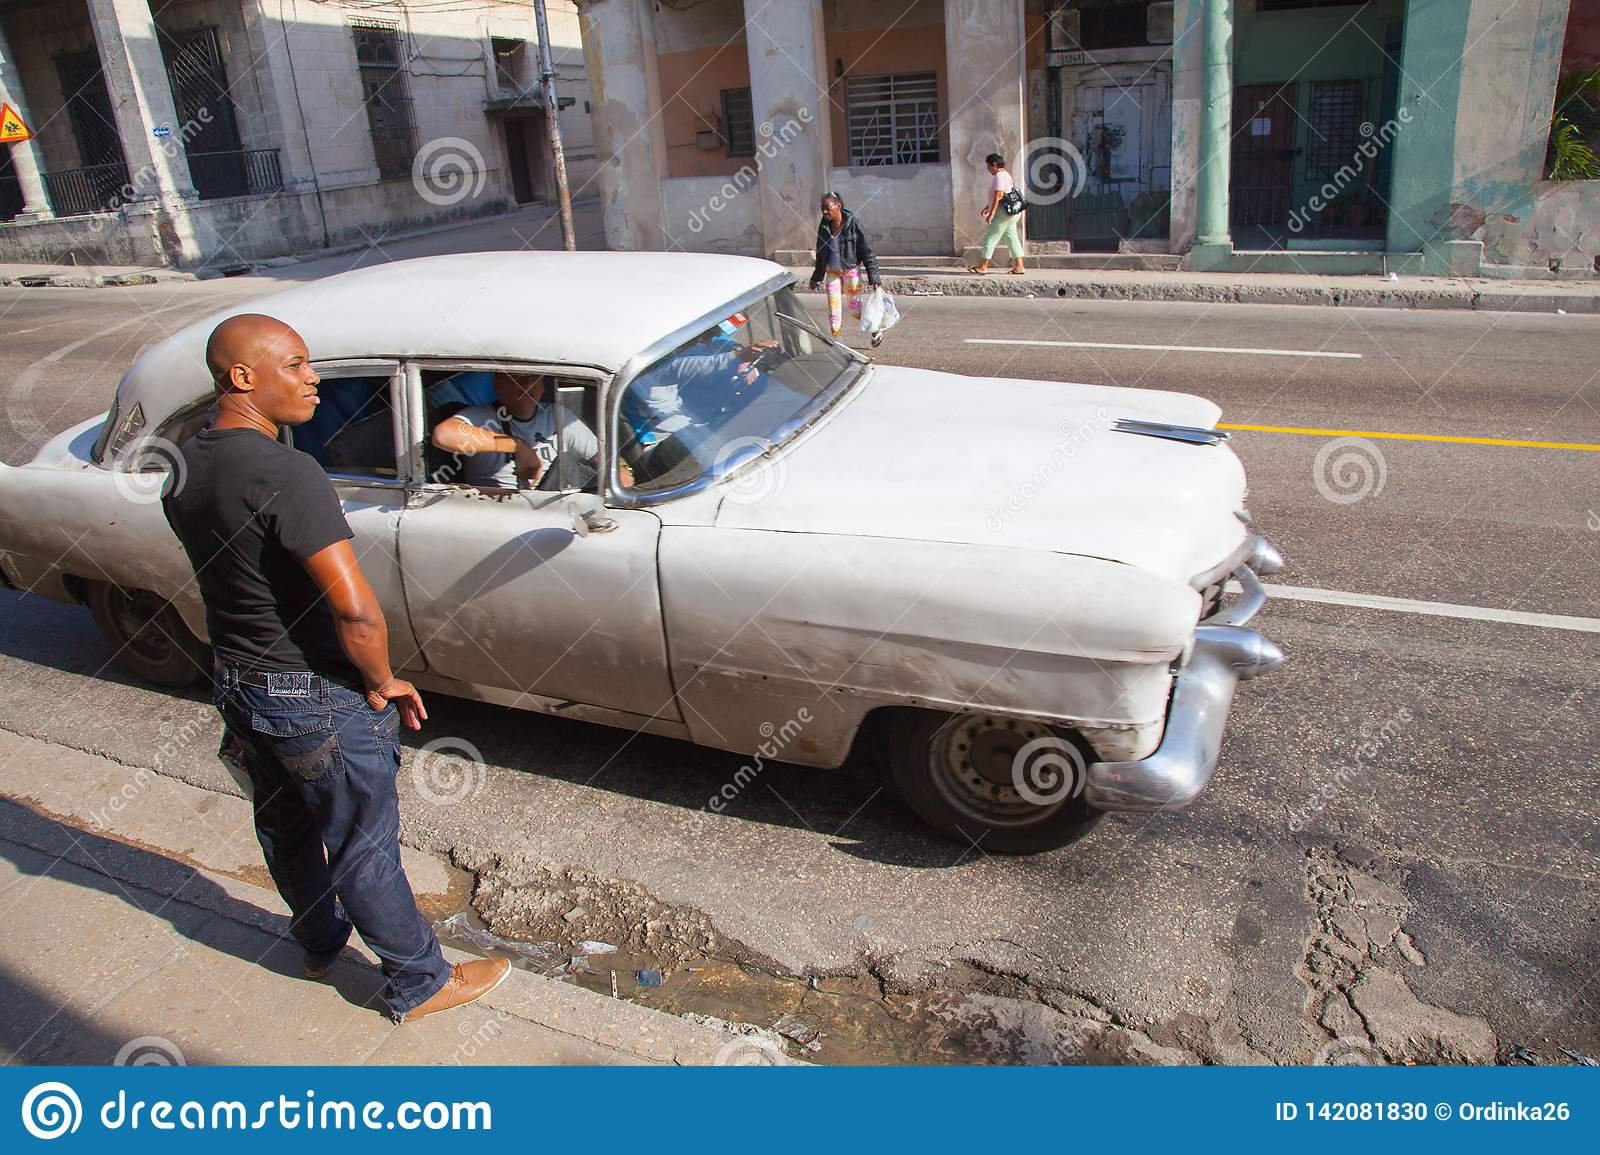 Unknown Cuban near a retro taxi on the streets of a dangerous area of Serrra